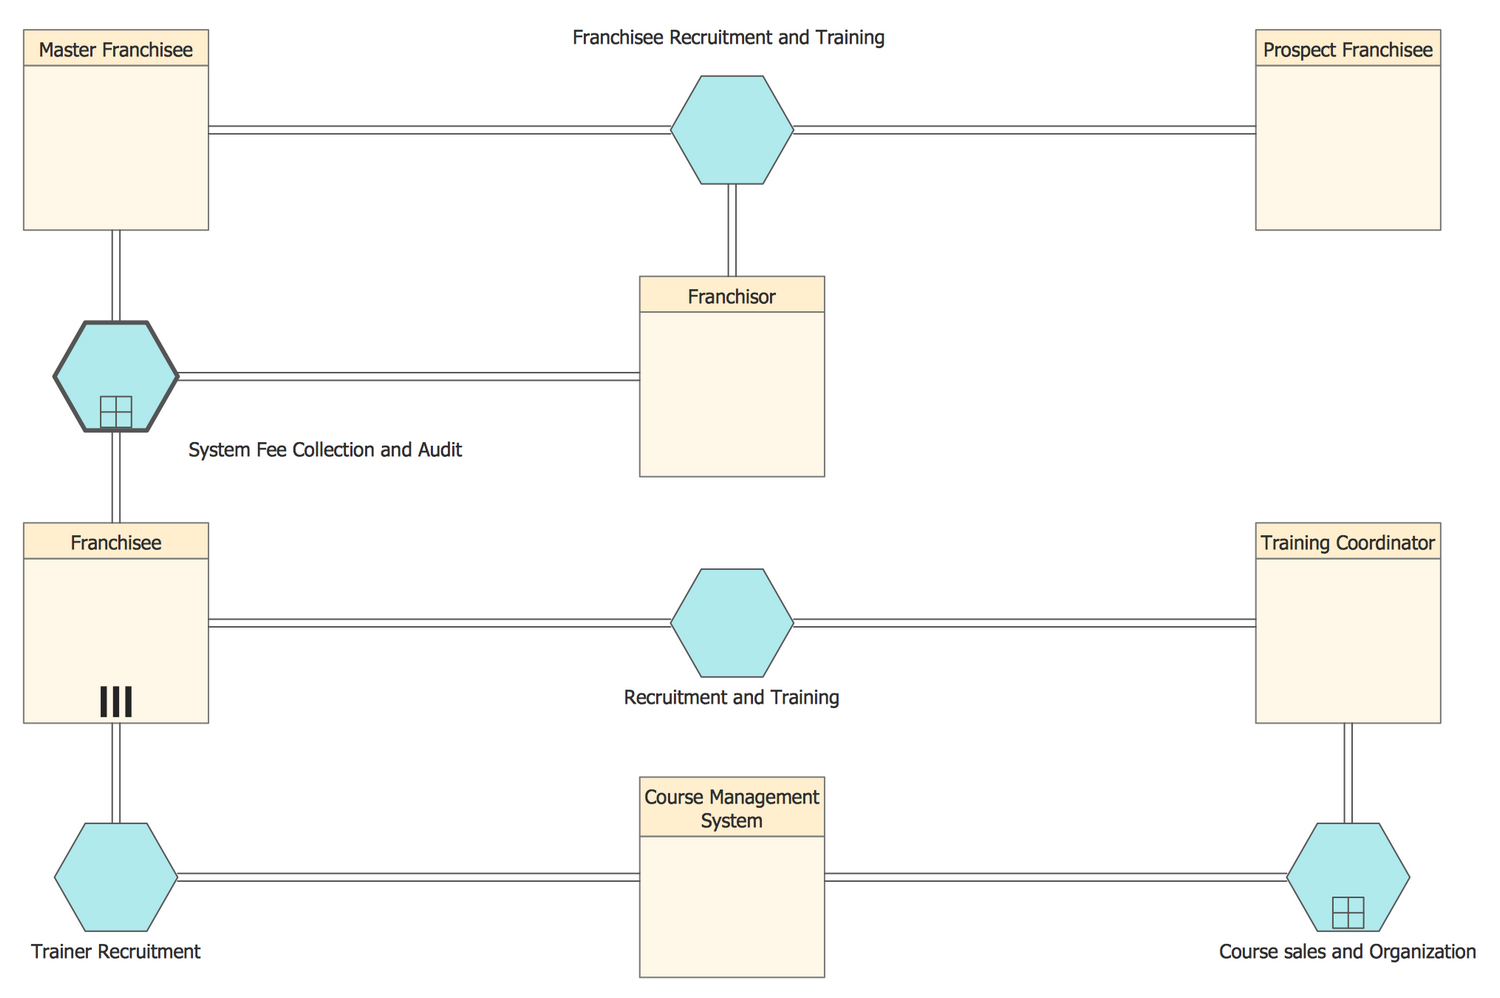 Conversation BPMN 2.0 Diagram